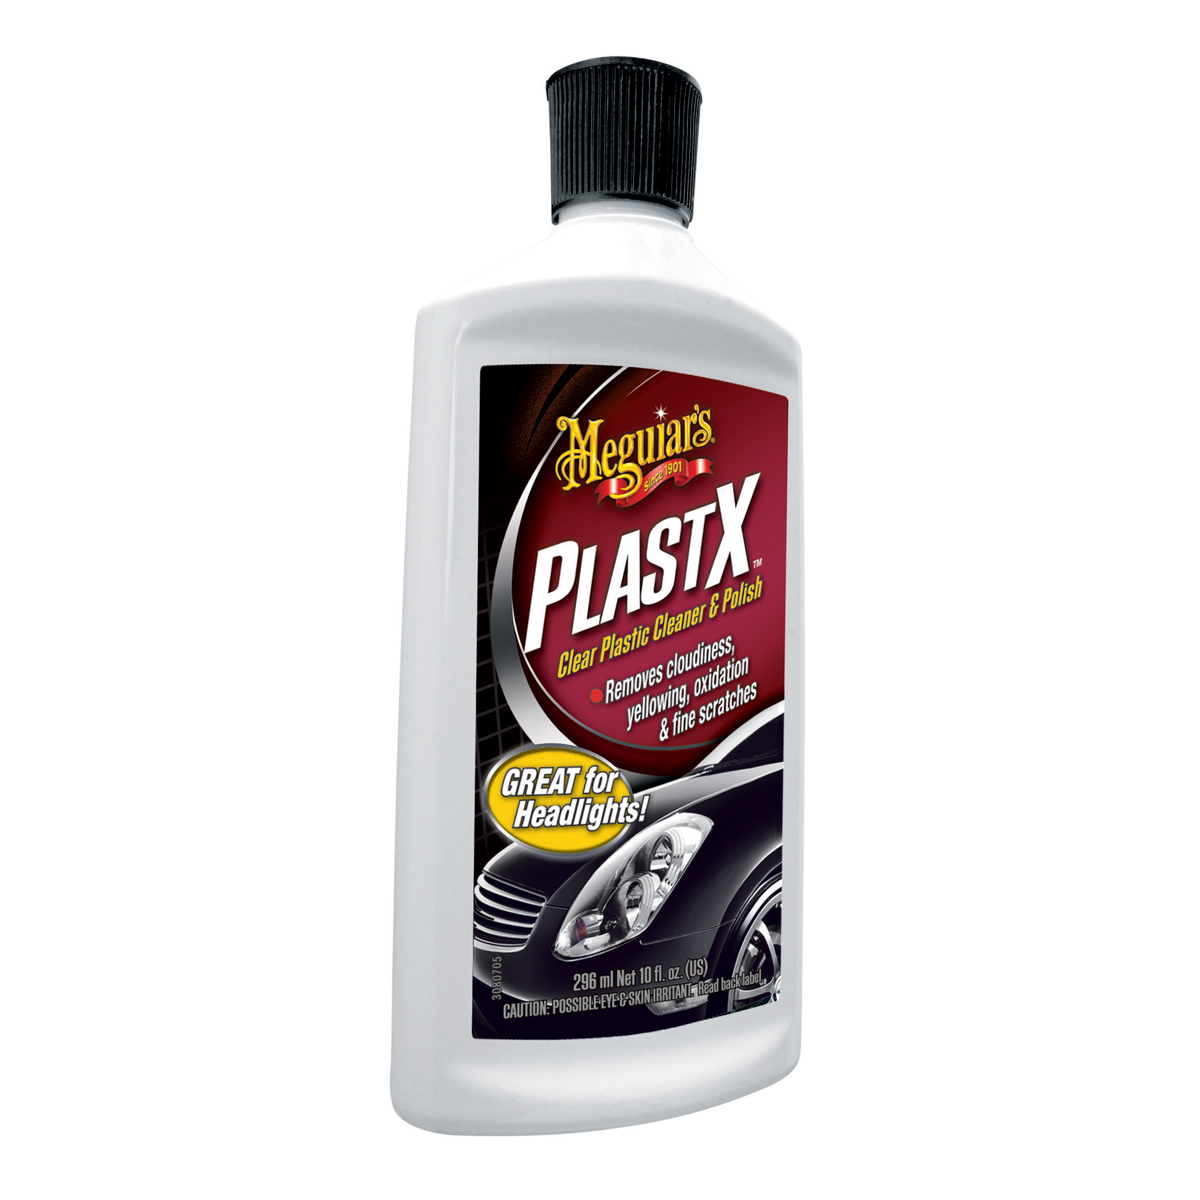 Plastx Clear Plastic Cleaner And Polish